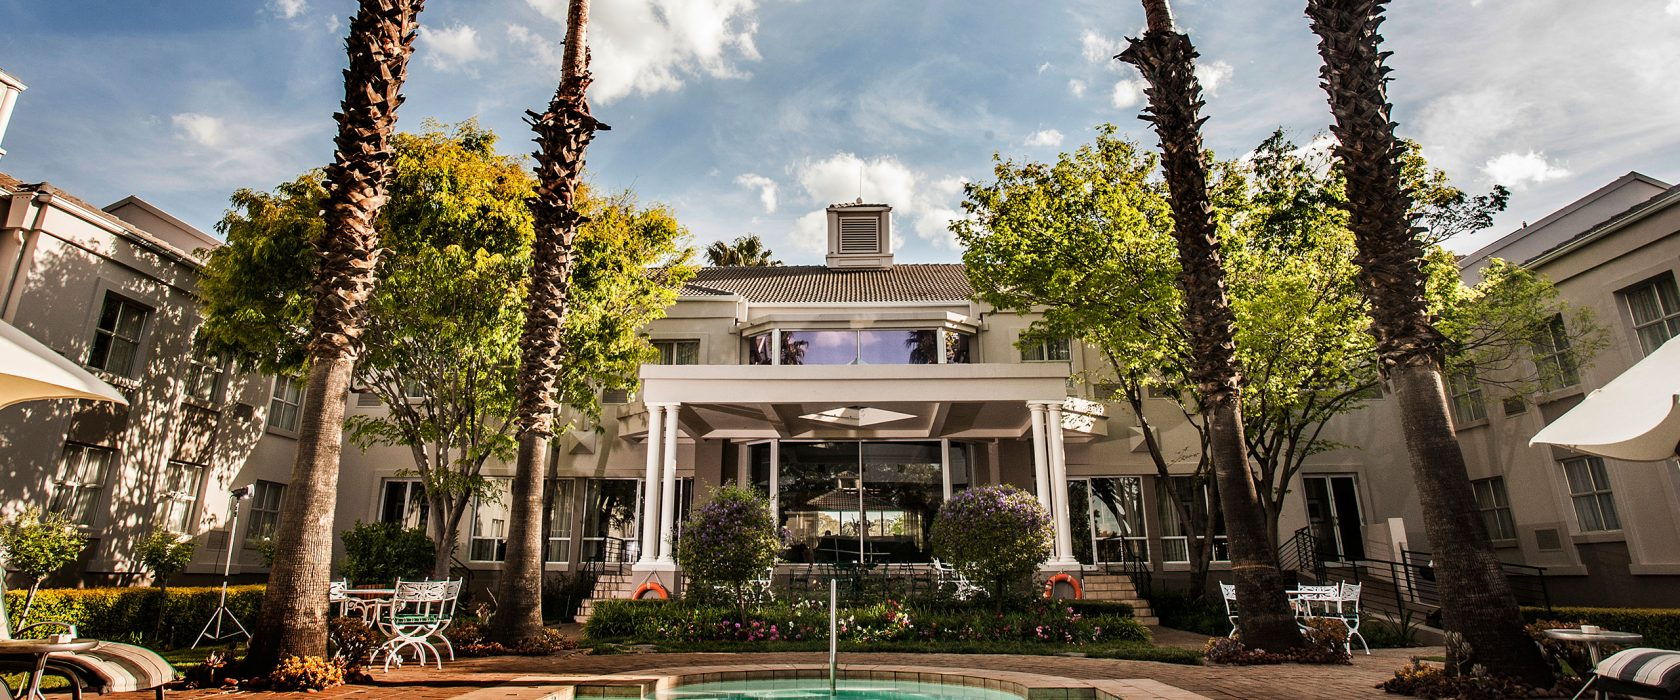 Garden Court Morningside | Morningside, Sandton Hotel